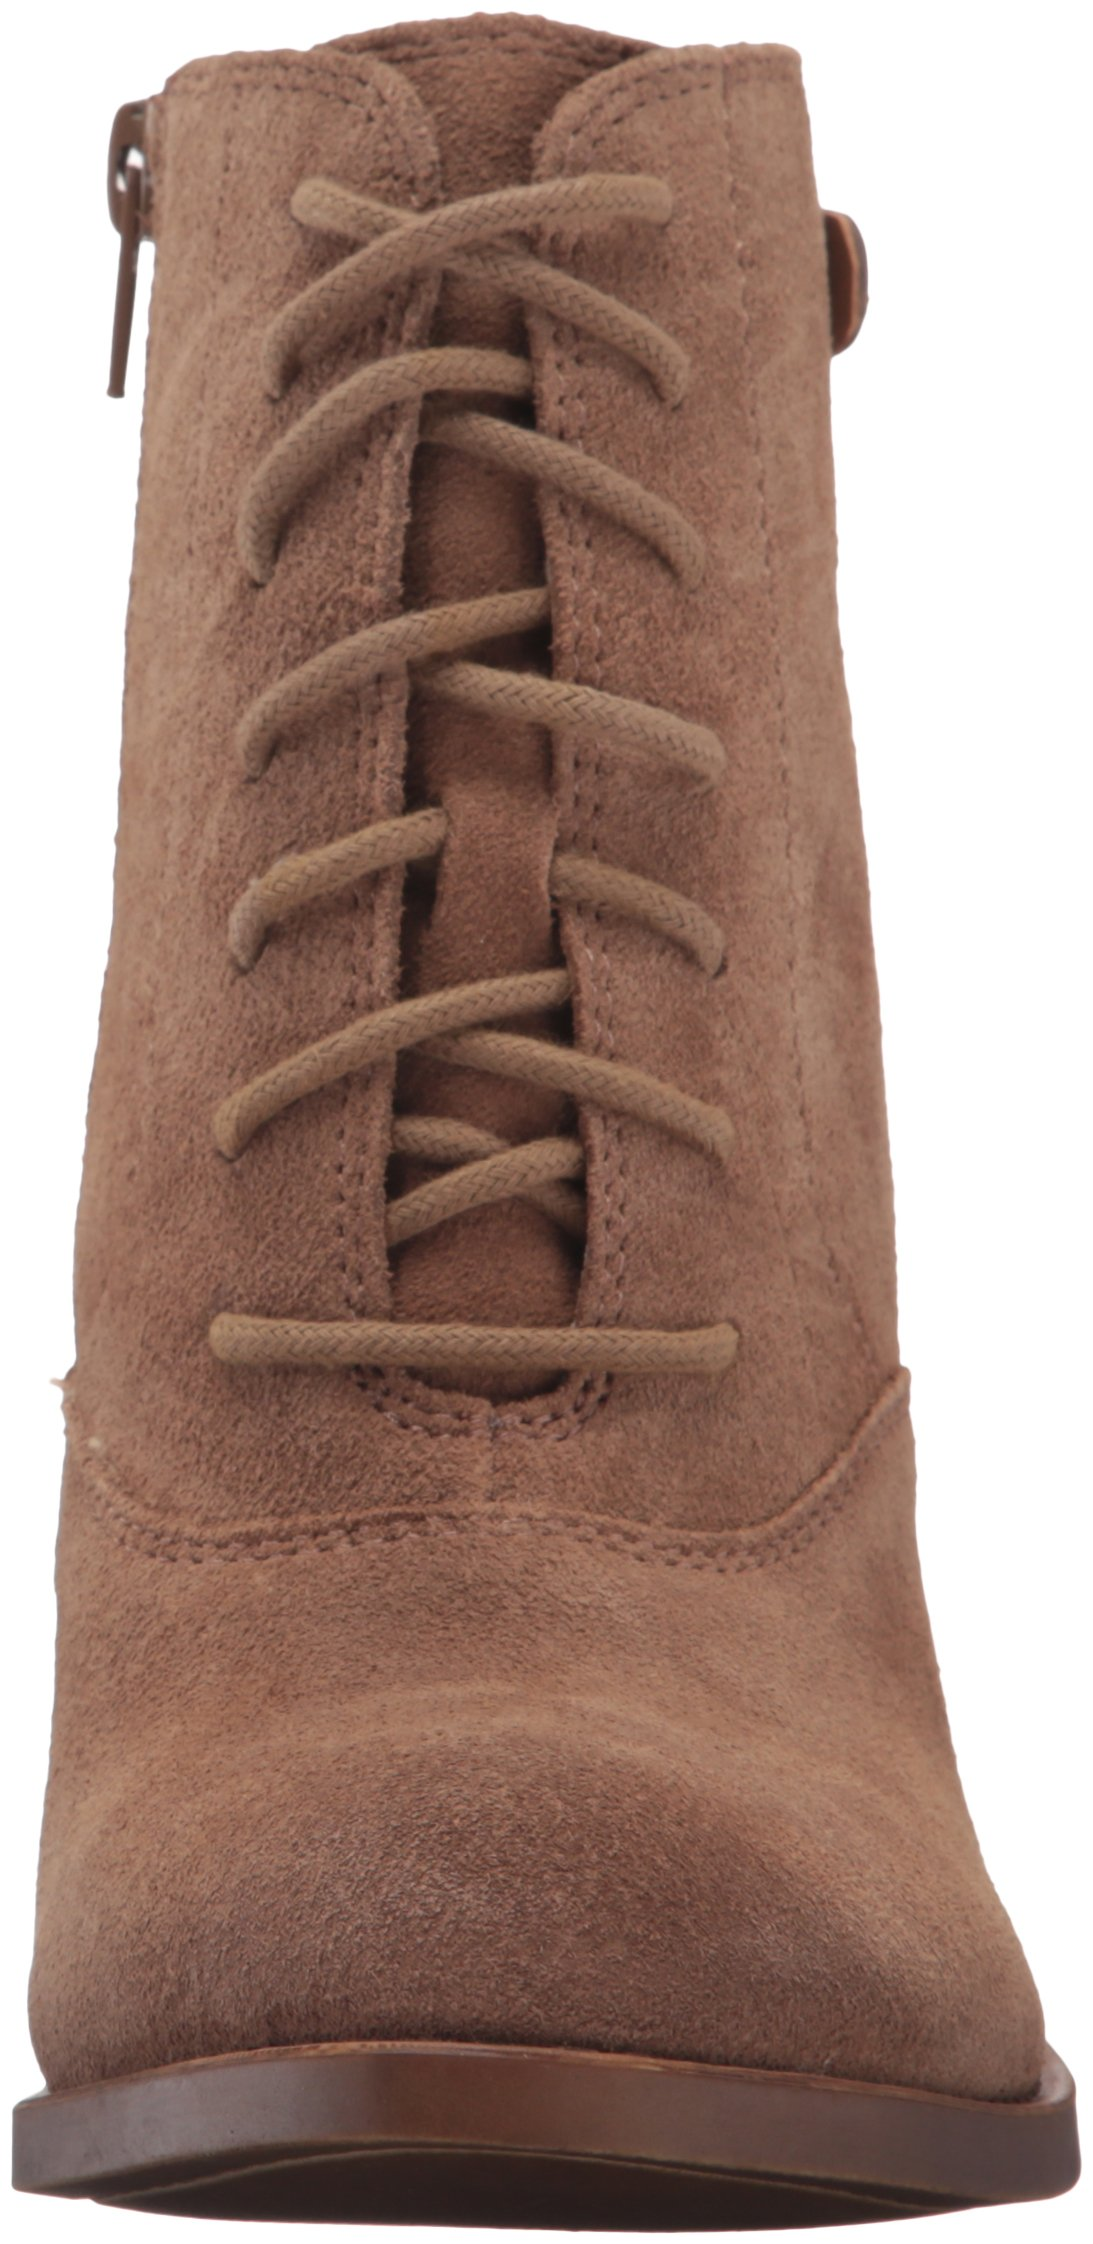 Lucky Brand Women's Echoh Ankle Bootie, Sesame, 10 M US by Lucky Brand (Image #4)